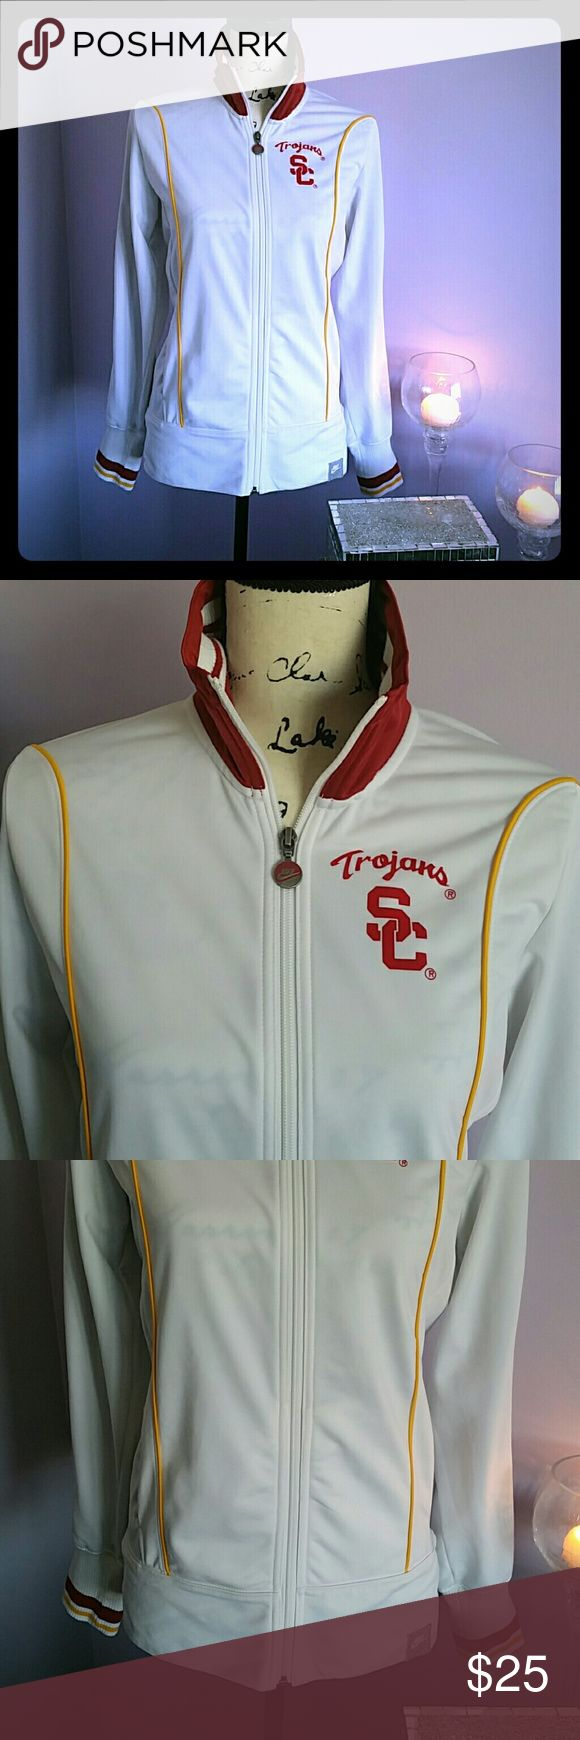 USC TROJANS NIKE TRACK JACKET! Super fun jacket to support your favorite team! Great fabric! Cool red, white and yellow design! Trojans SC graphic! Collar can be worn up or down! Worn with love! Happy Shopping! Nike Tops Sweatshirts & Hoodies